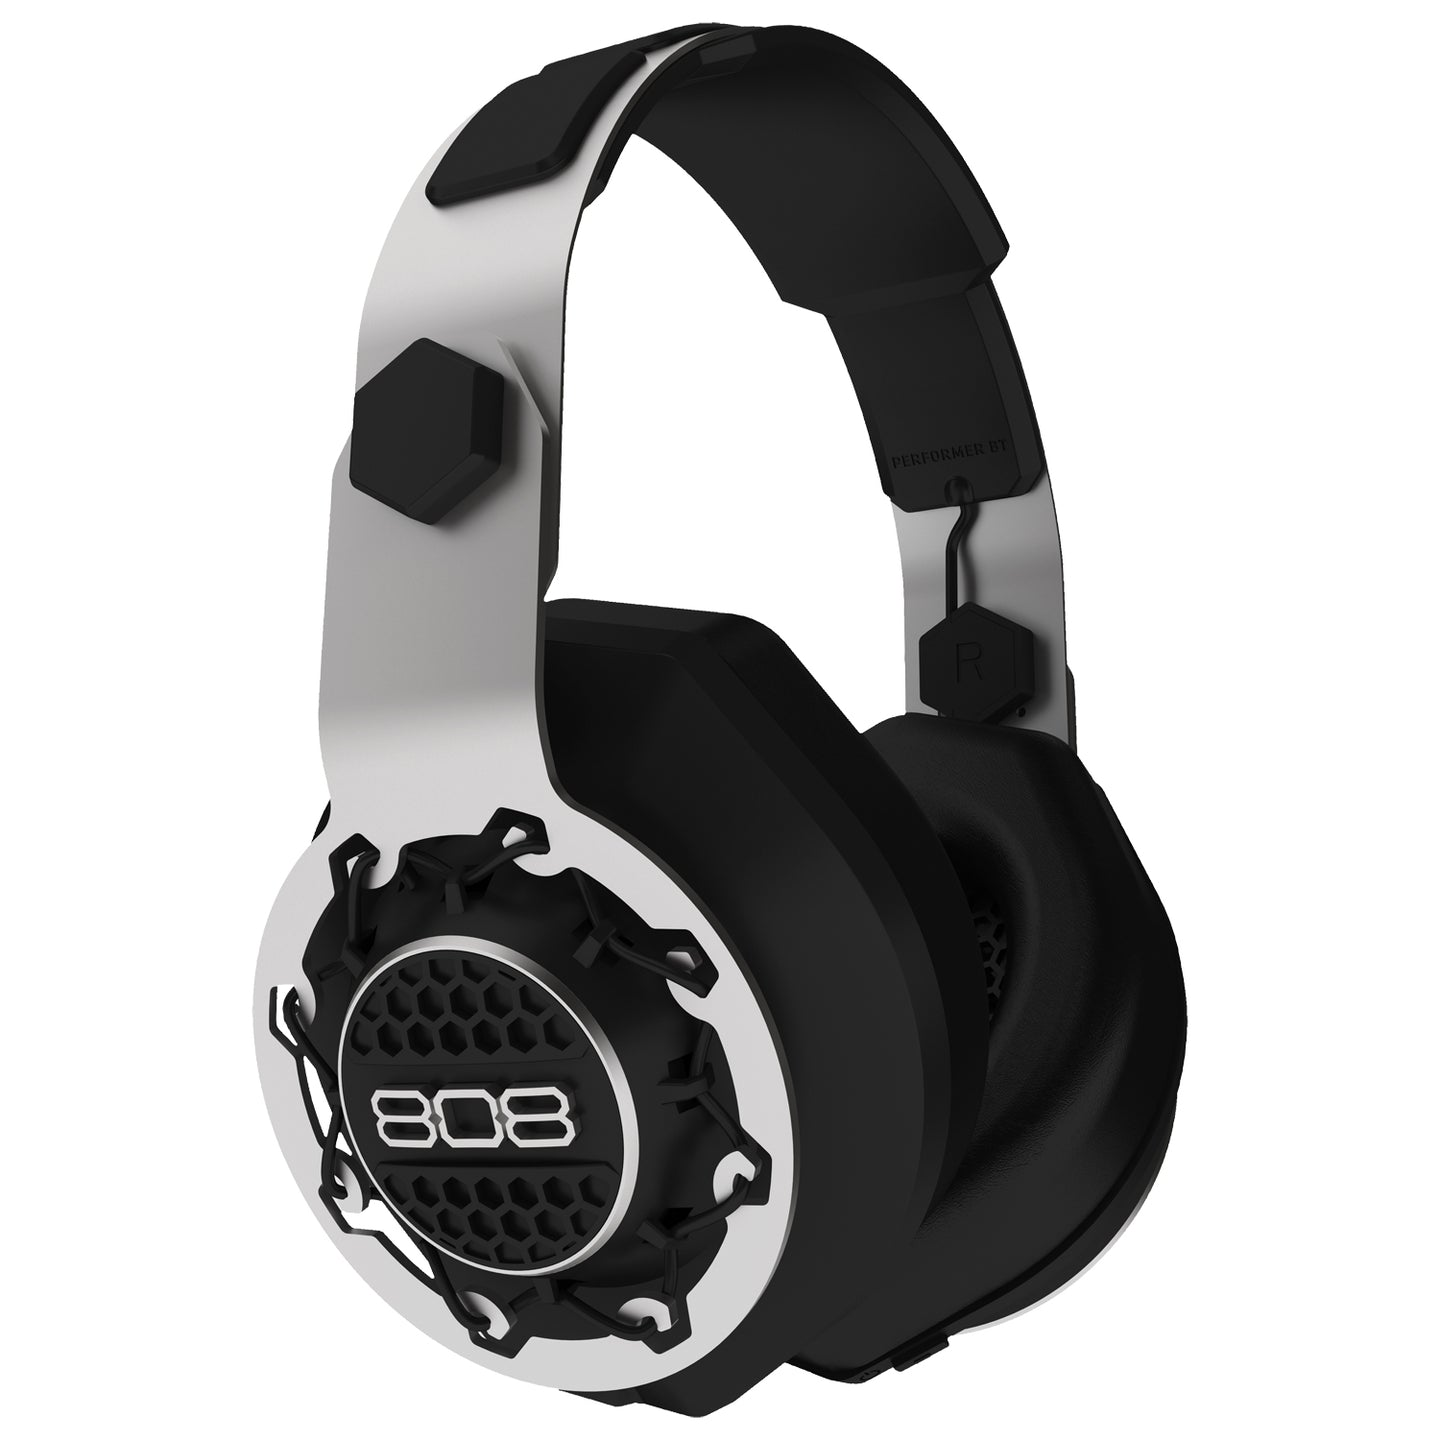 808 Audio Performer Bluetooth Headphones Black